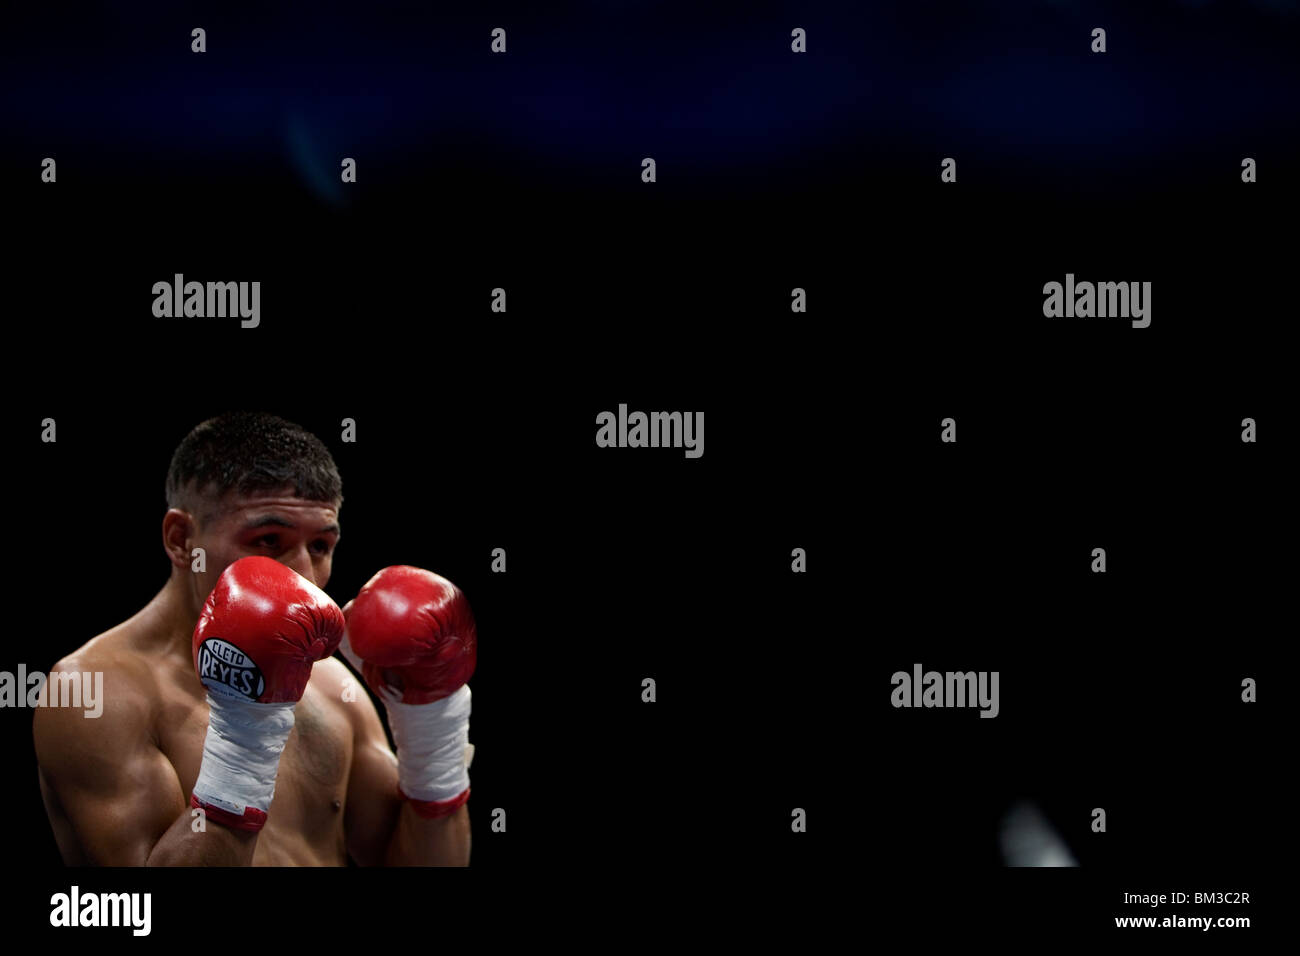 Boxer David Carmona waits for his opponent during a boxing bout in Mexico City, December 9, 2009. - Stock Image